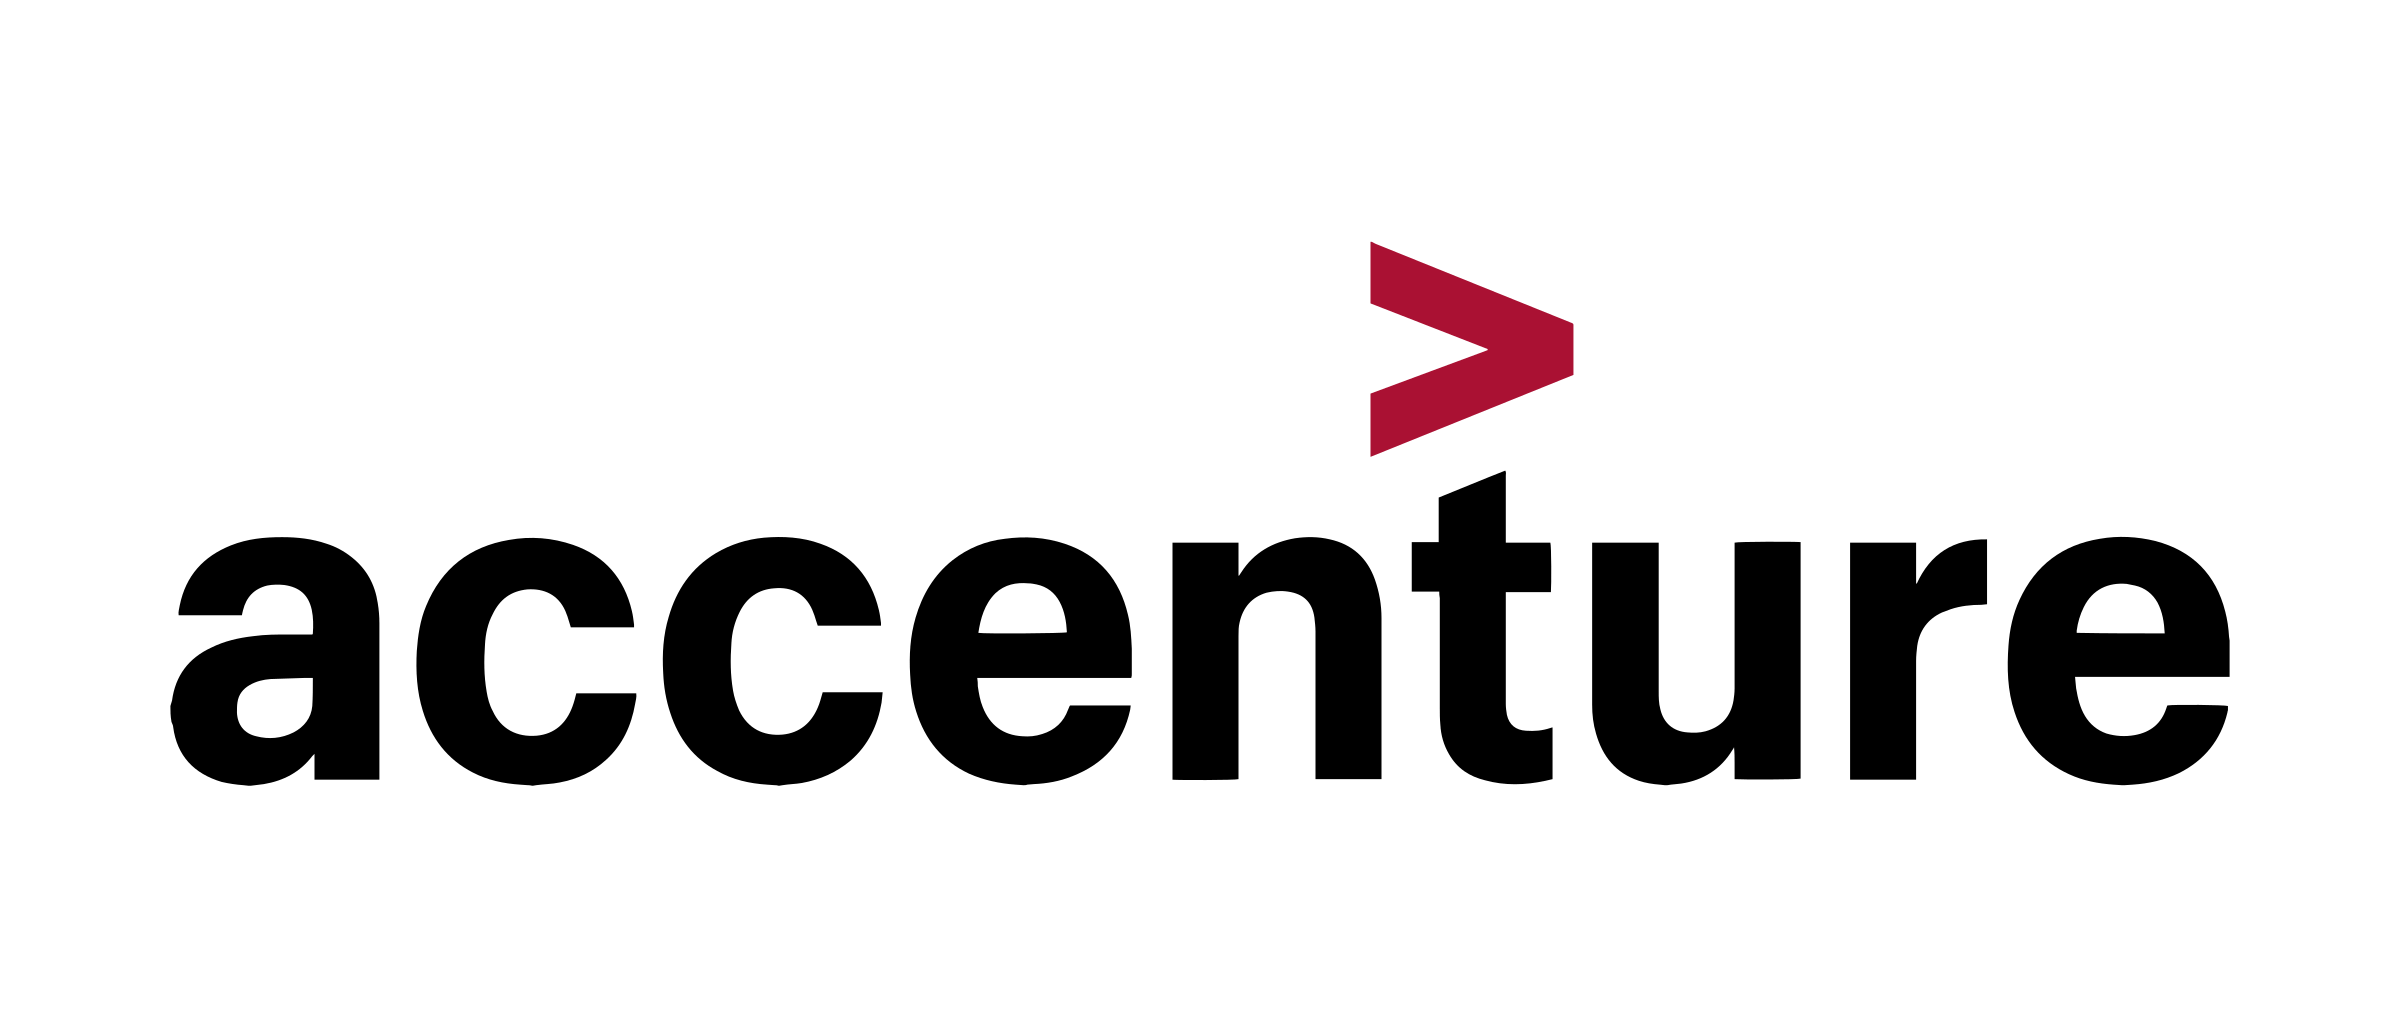 Accenture Logo - Accenture Logo PNG Transparent & SVG Vector - Freebie Supply